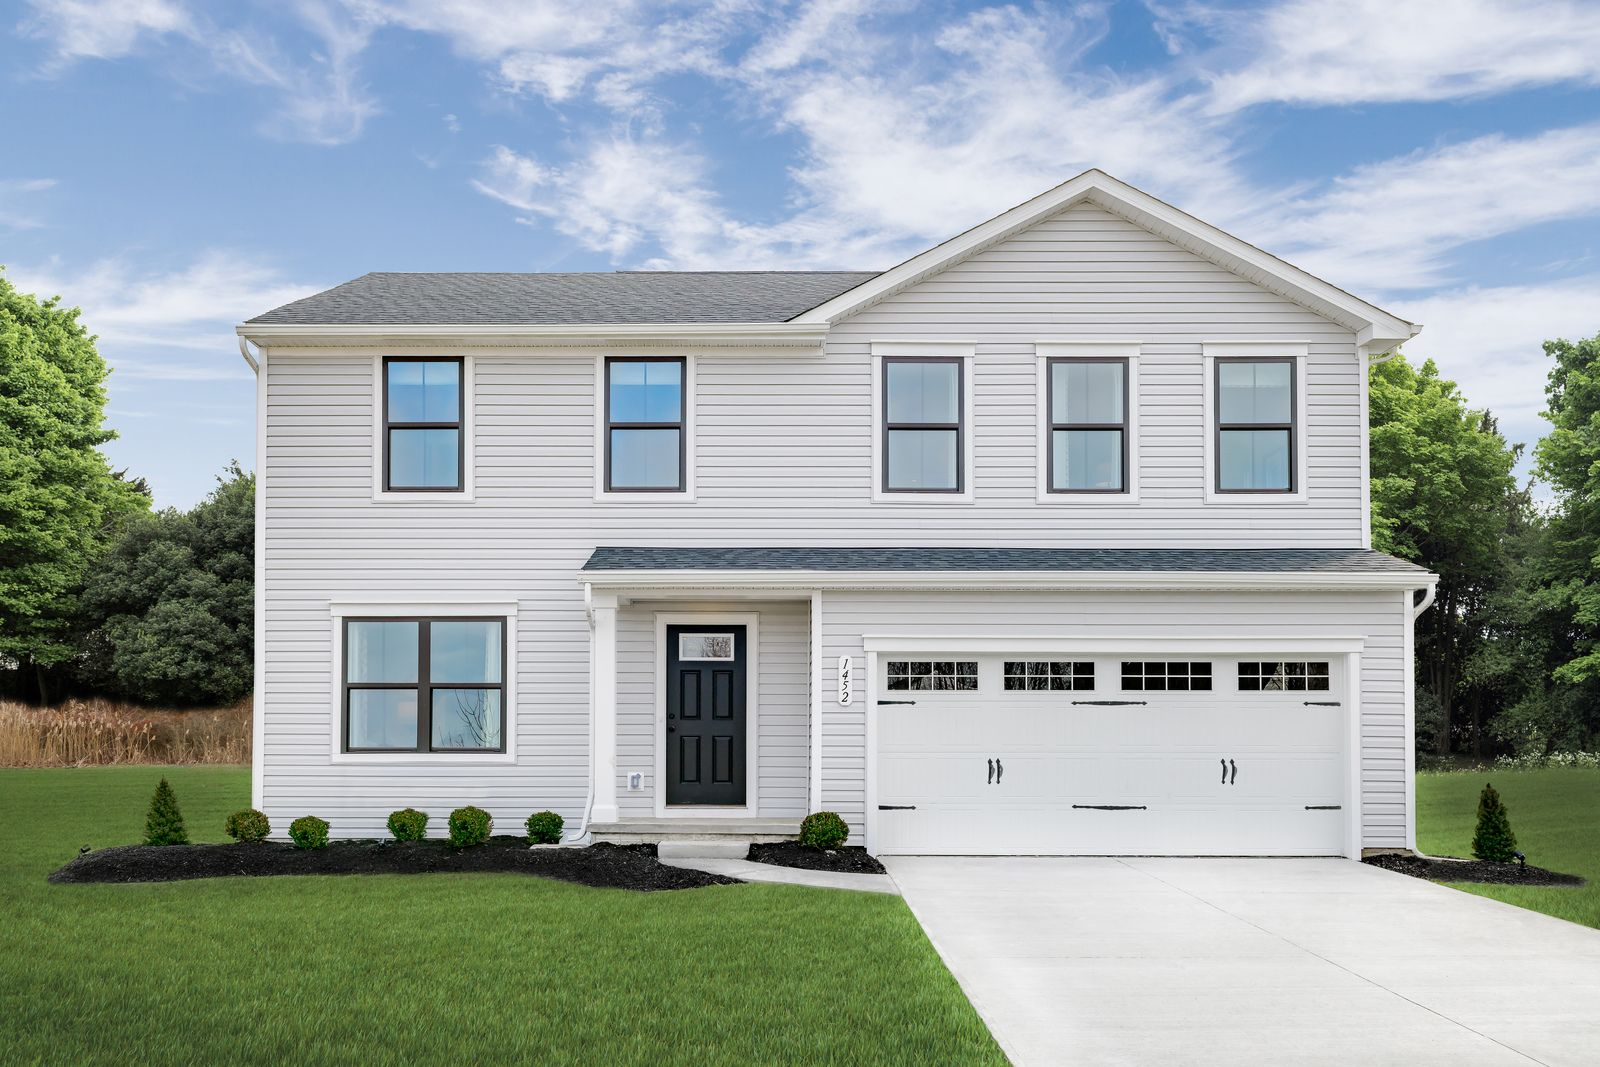 NEW HOMES COMING SOON TO BOURBONNAIS:New 2-story and ranch homes off I-57. Located in School District #307 & #258 with basements and all appliances included.Click here to join the VIP List!